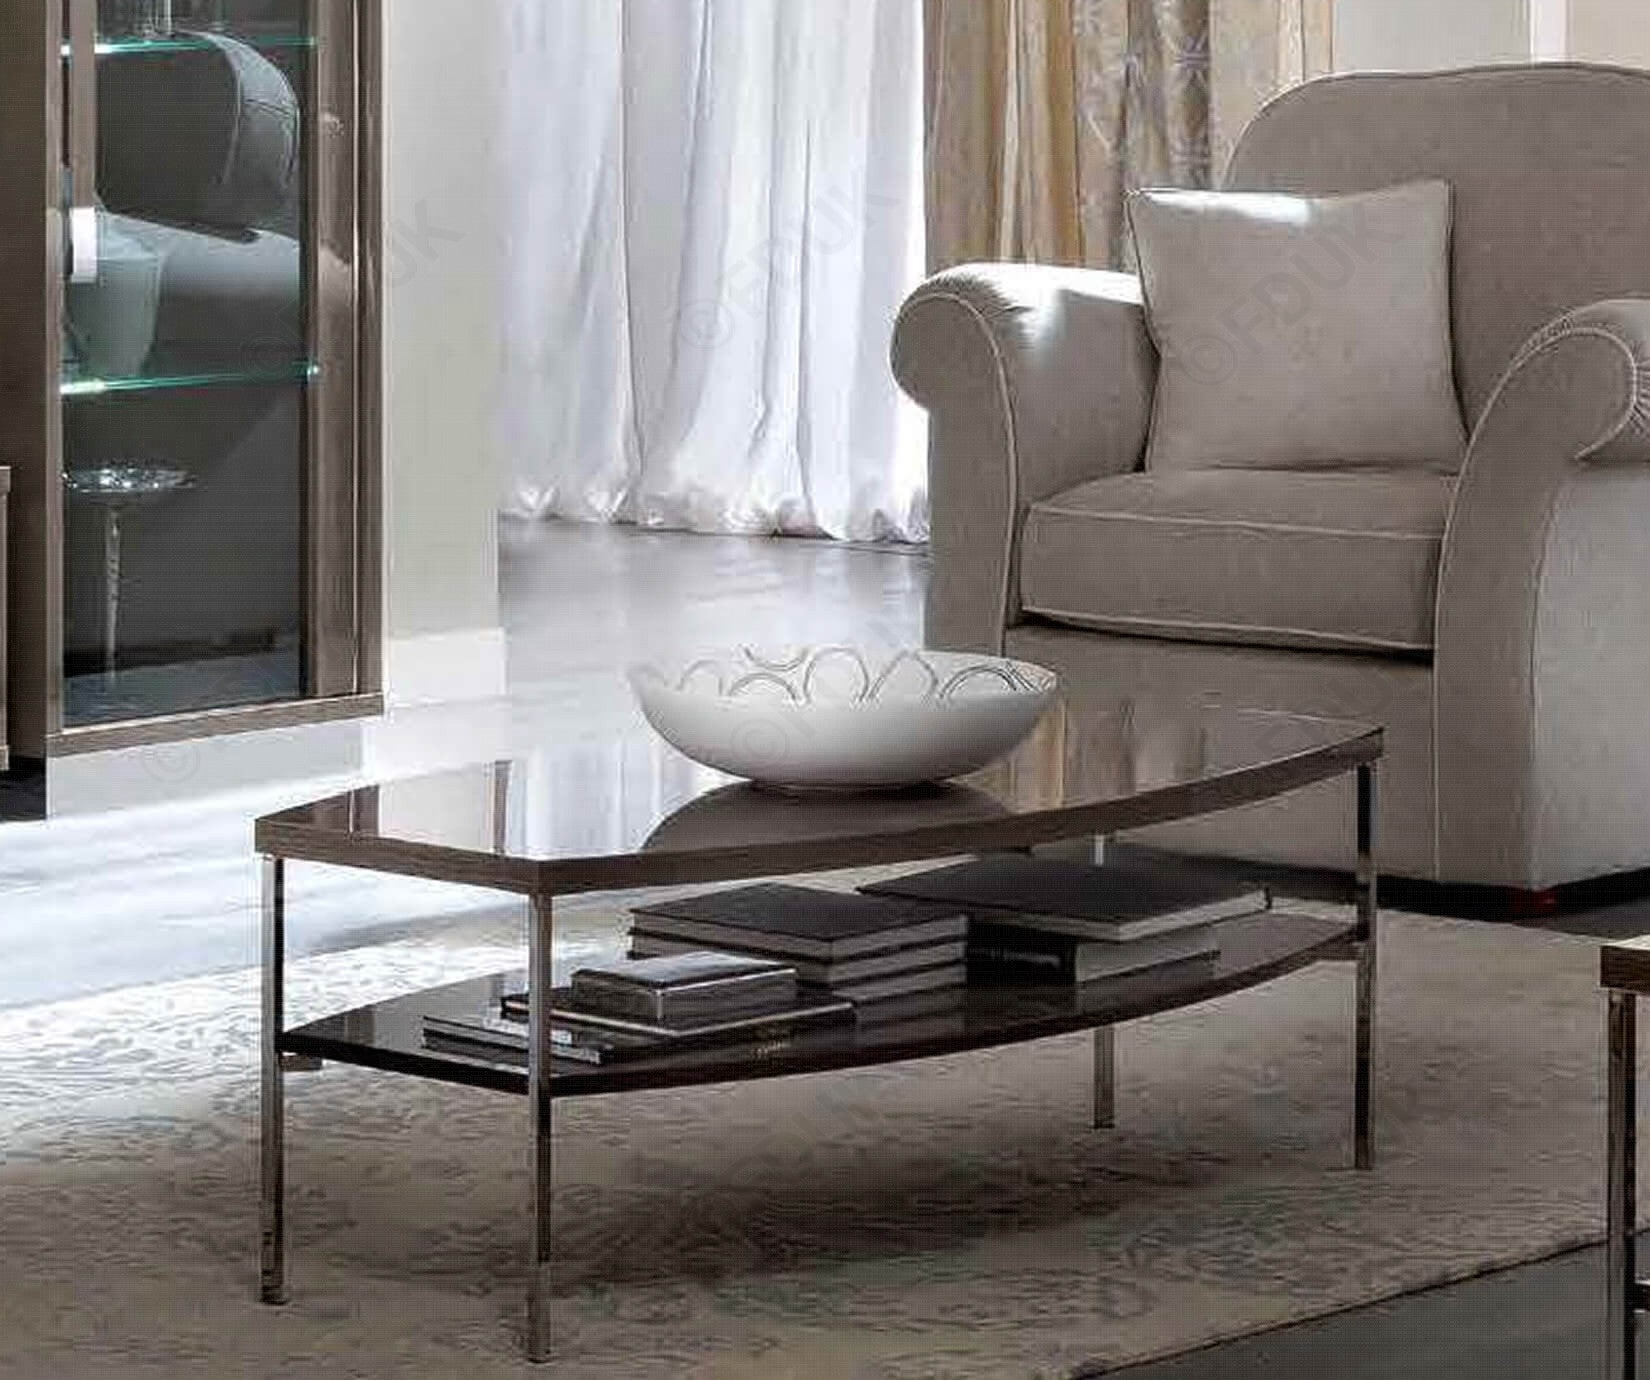 Platinum Day Italian Silver Birch High Gloss Coffee Table - ImagineX Furniture & Interiors